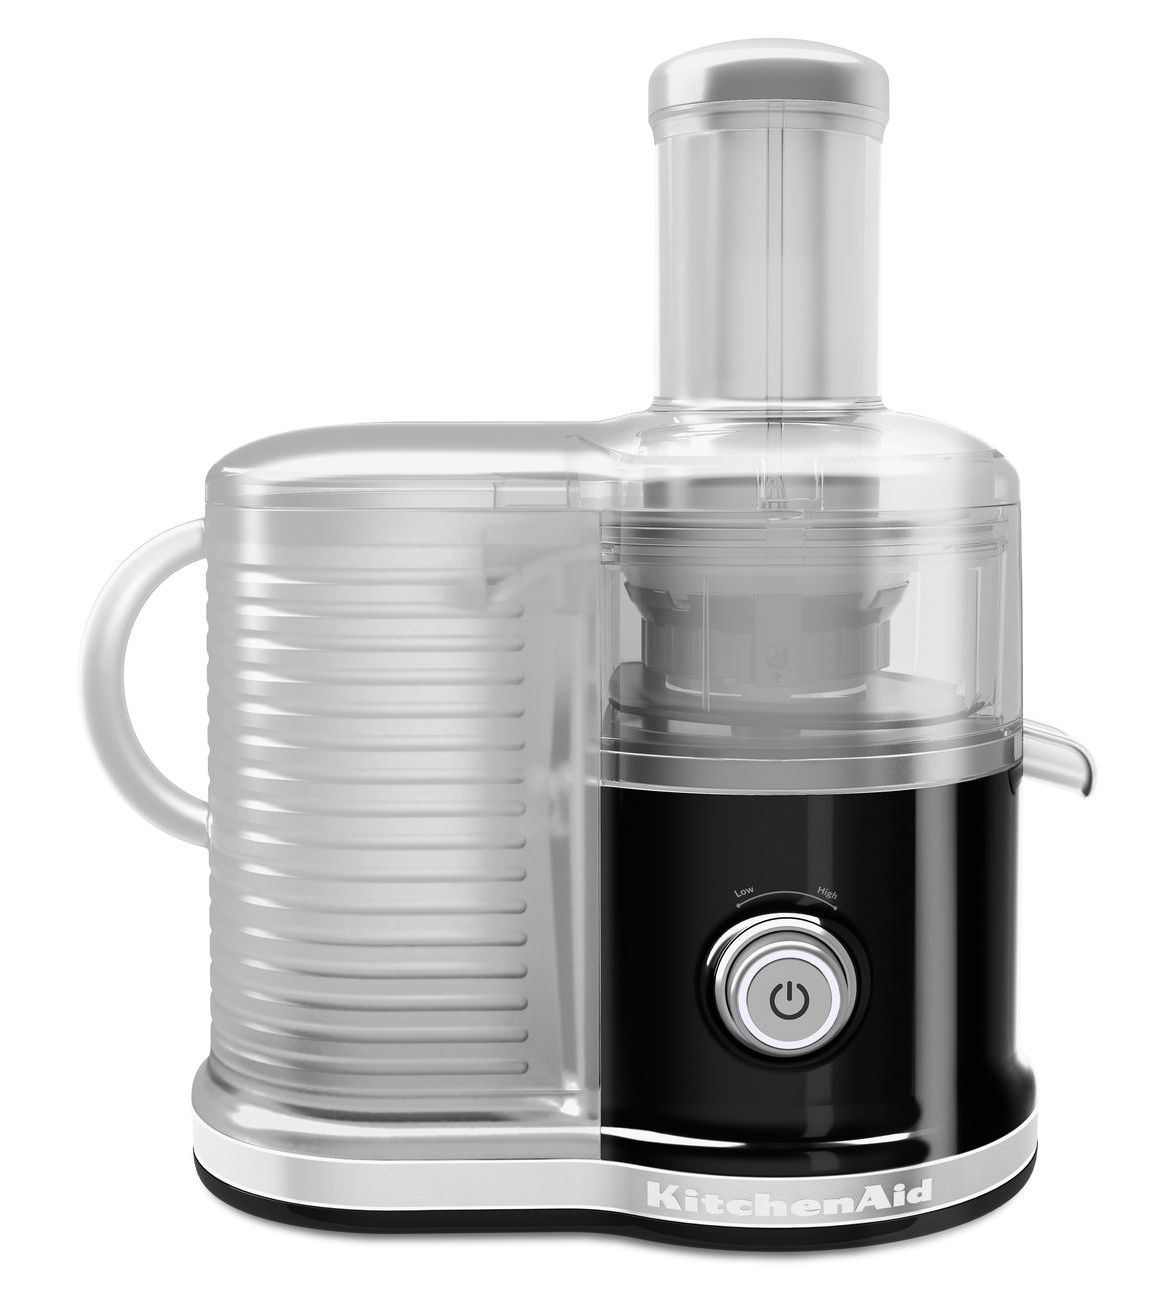 KitchenAid® Easy Clean Juicer (fast juicer)